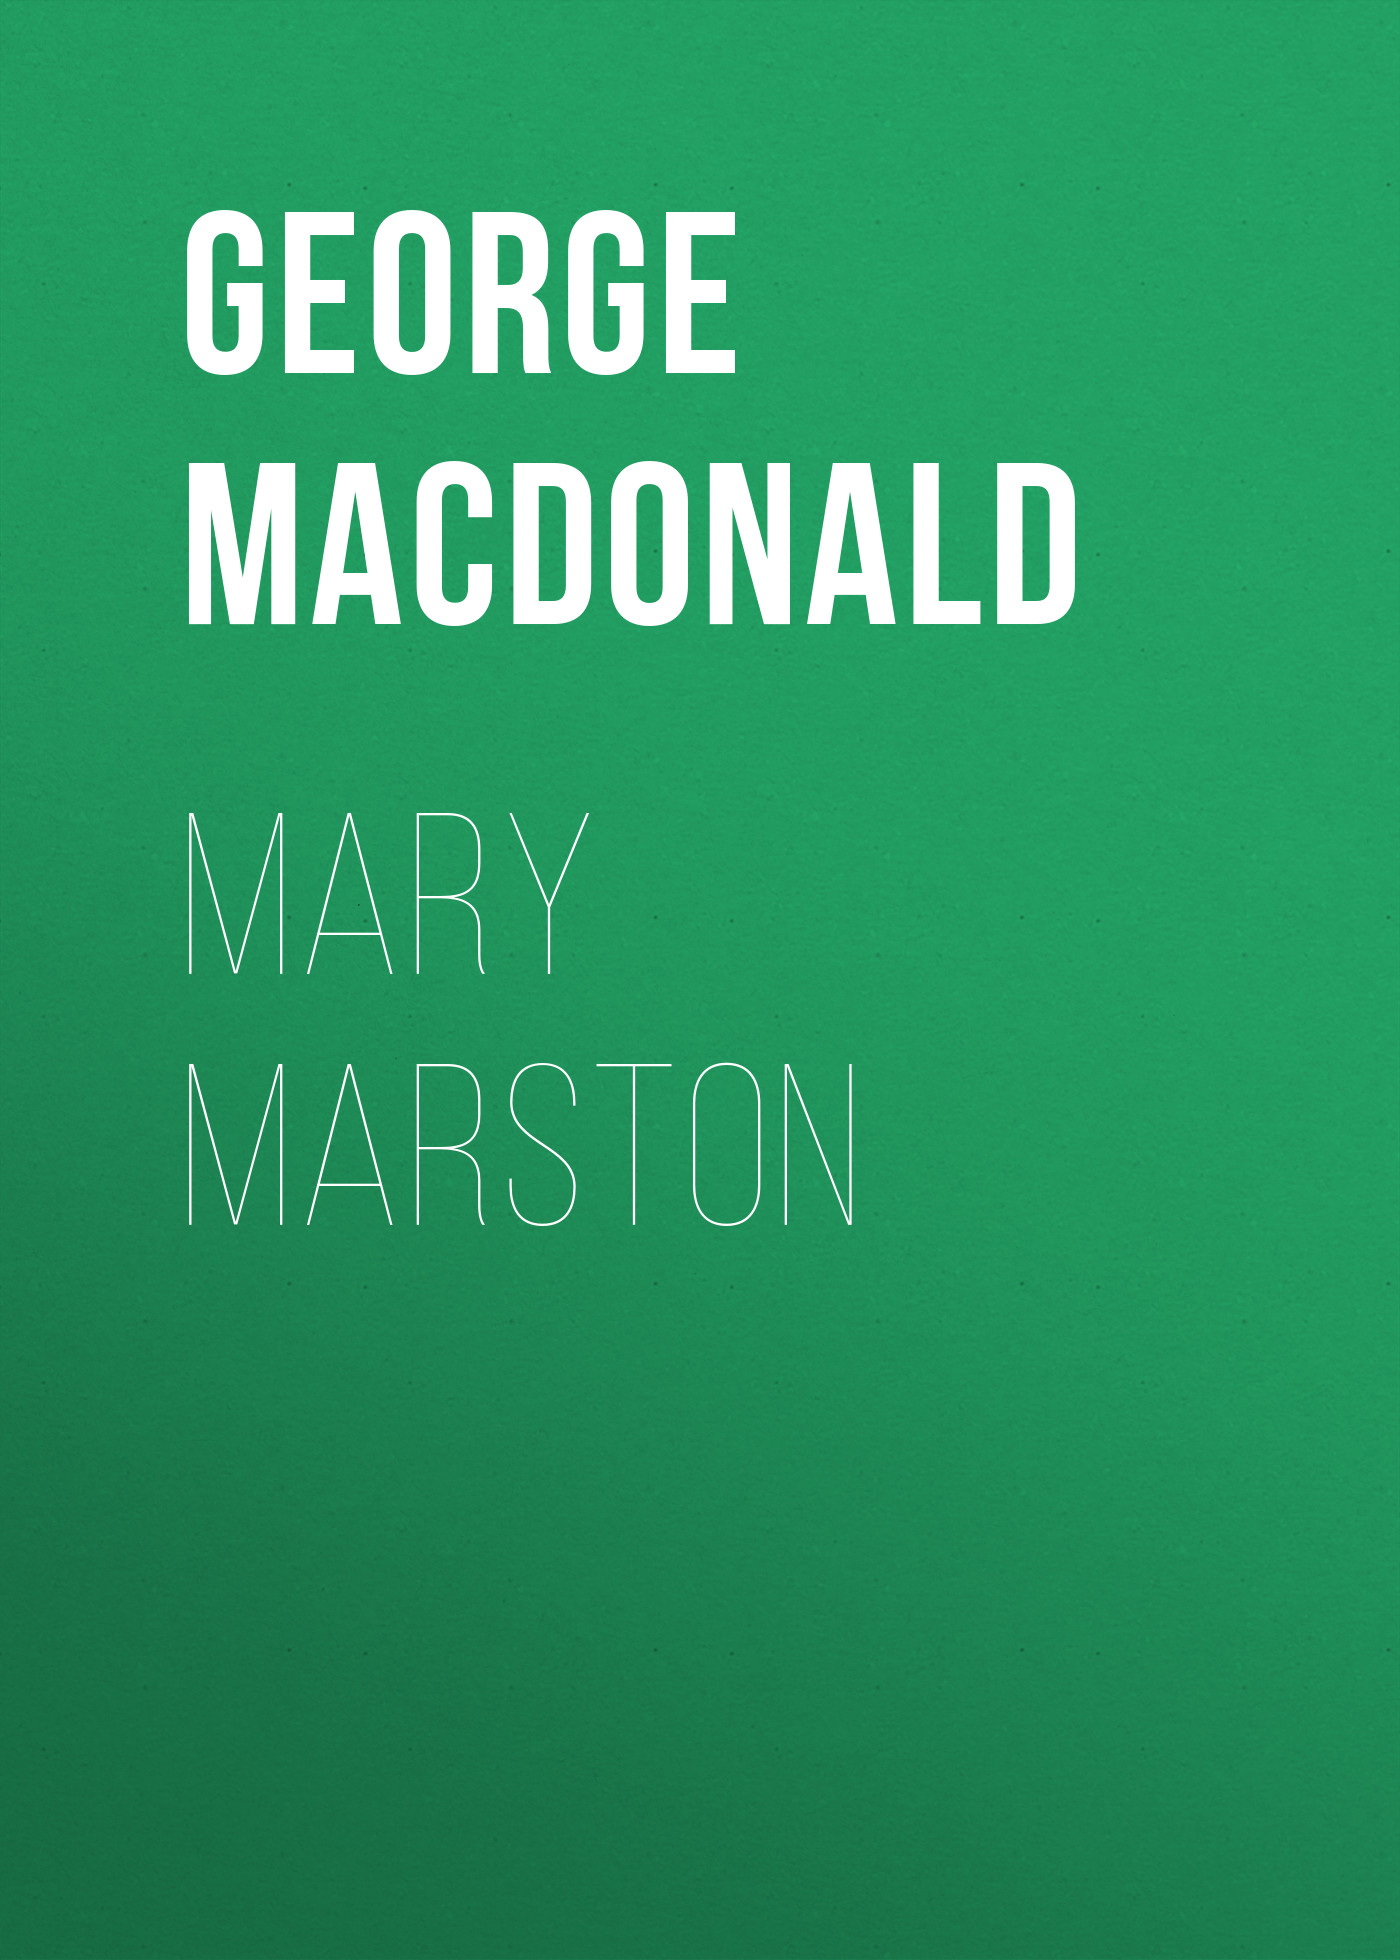 все цены на George MacDonald Mary Marston онлайн